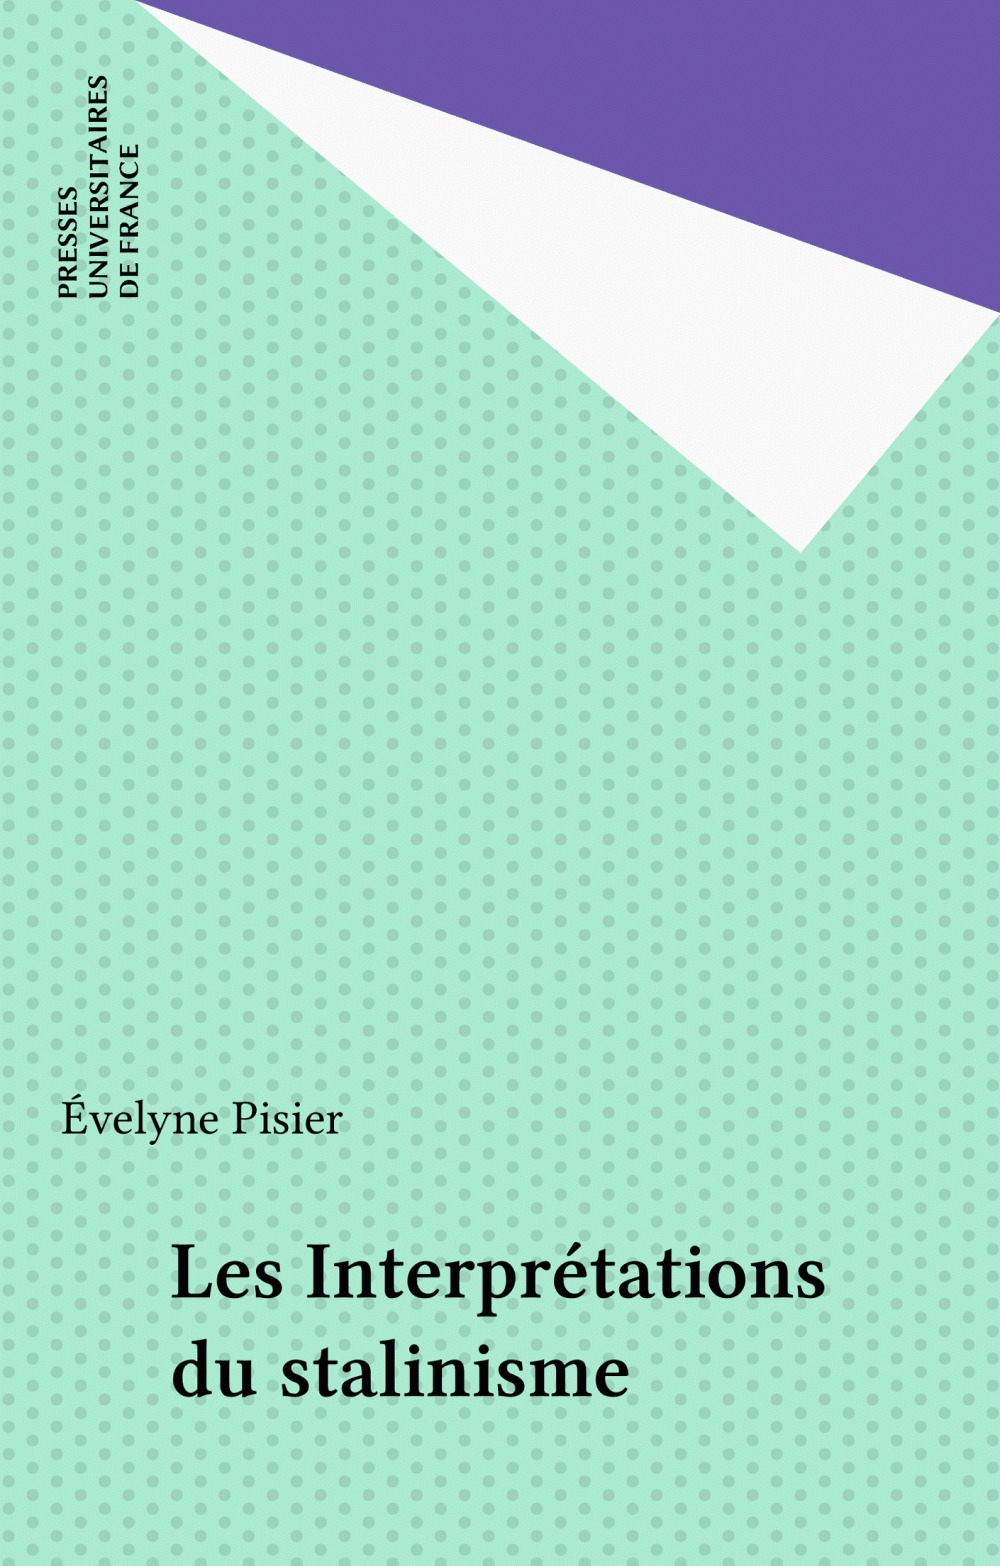 Évelyne Pisier Les Interprétations du stalinisme